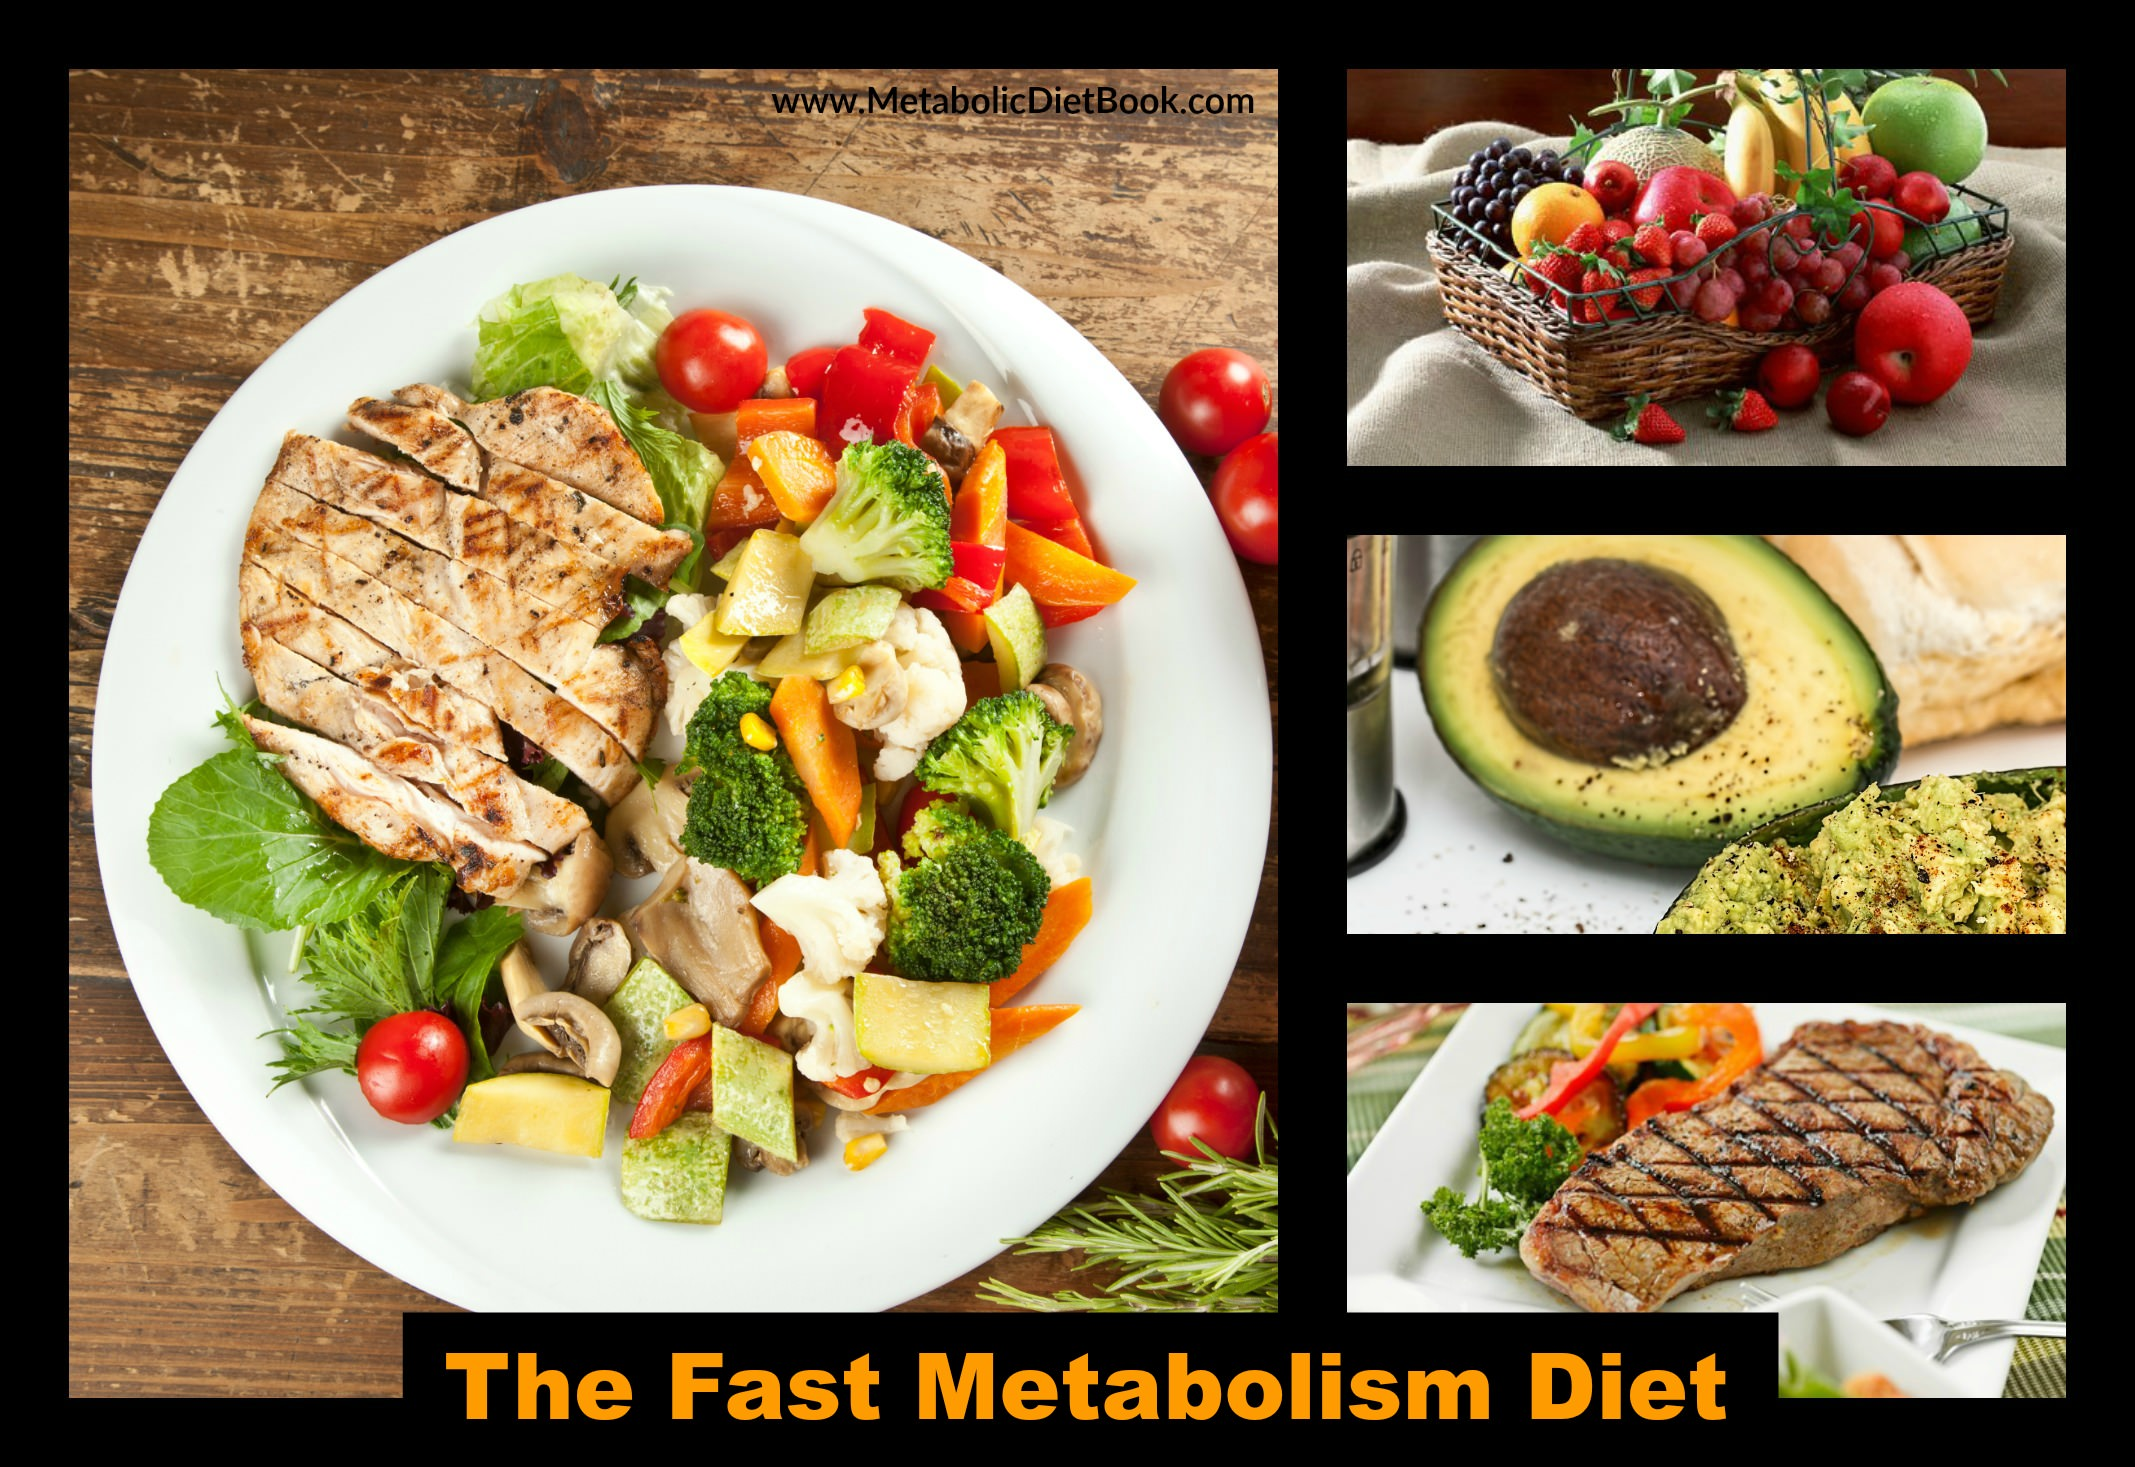 A Review of The Fast Metabolism Diet: Can You Really Lose Weight This Fast?